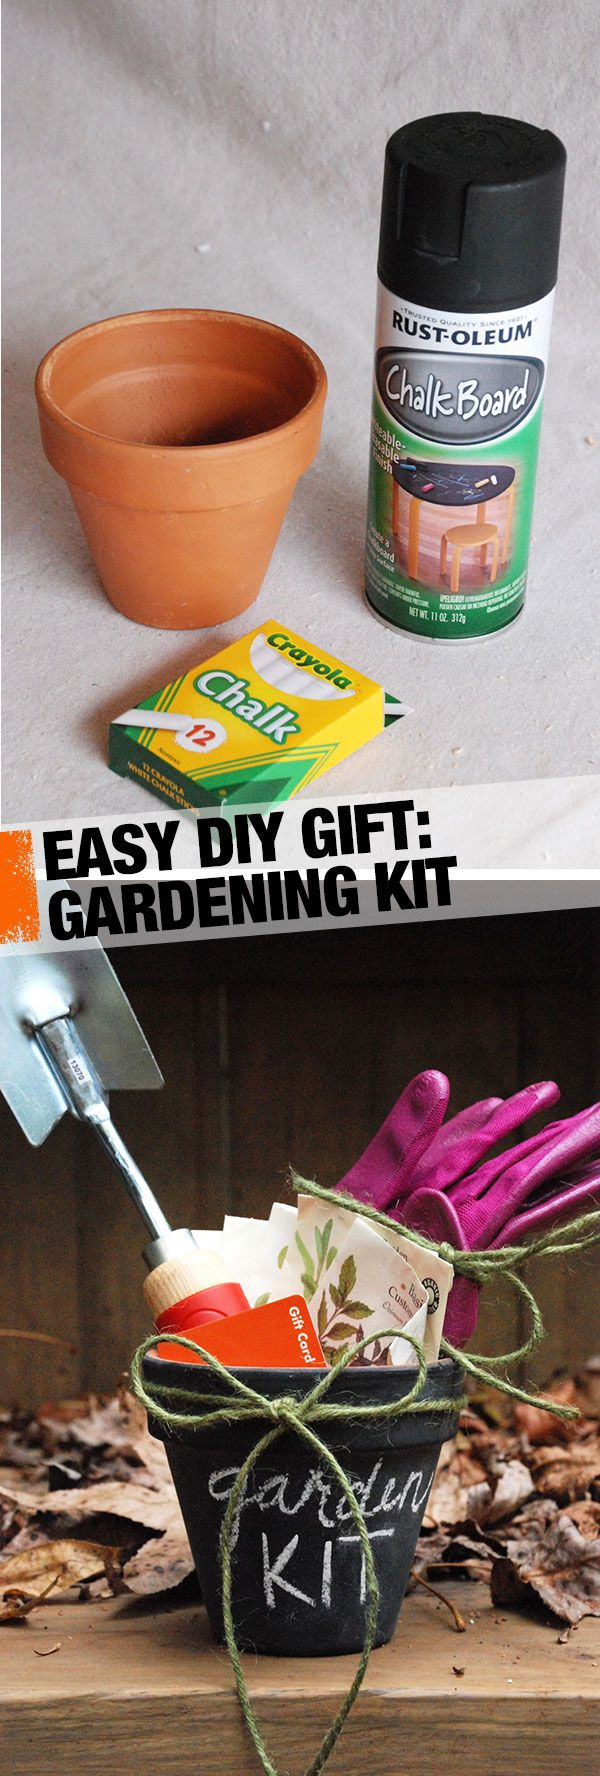 56 best gifts for gardeners images on pinterest | garden ideas